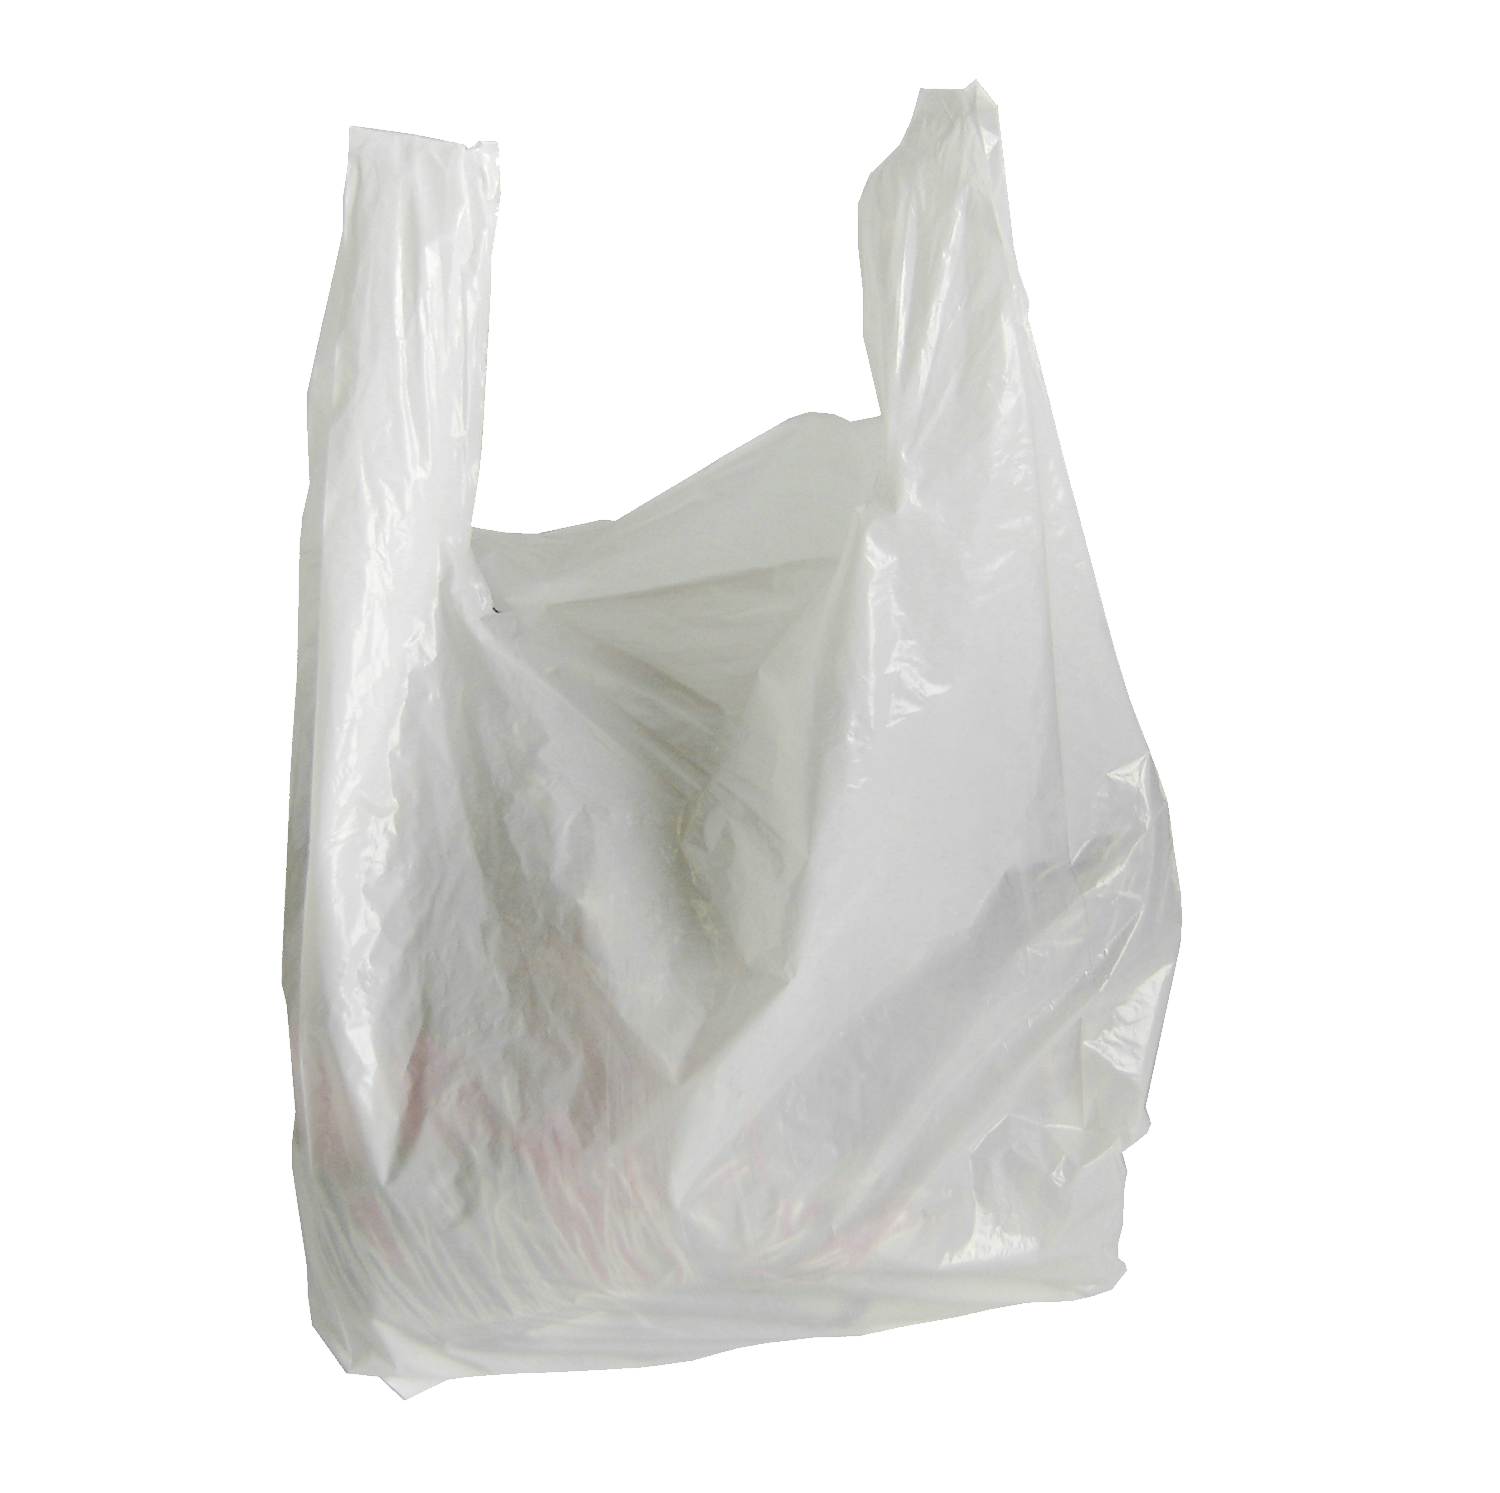 Plastic bag PNG.